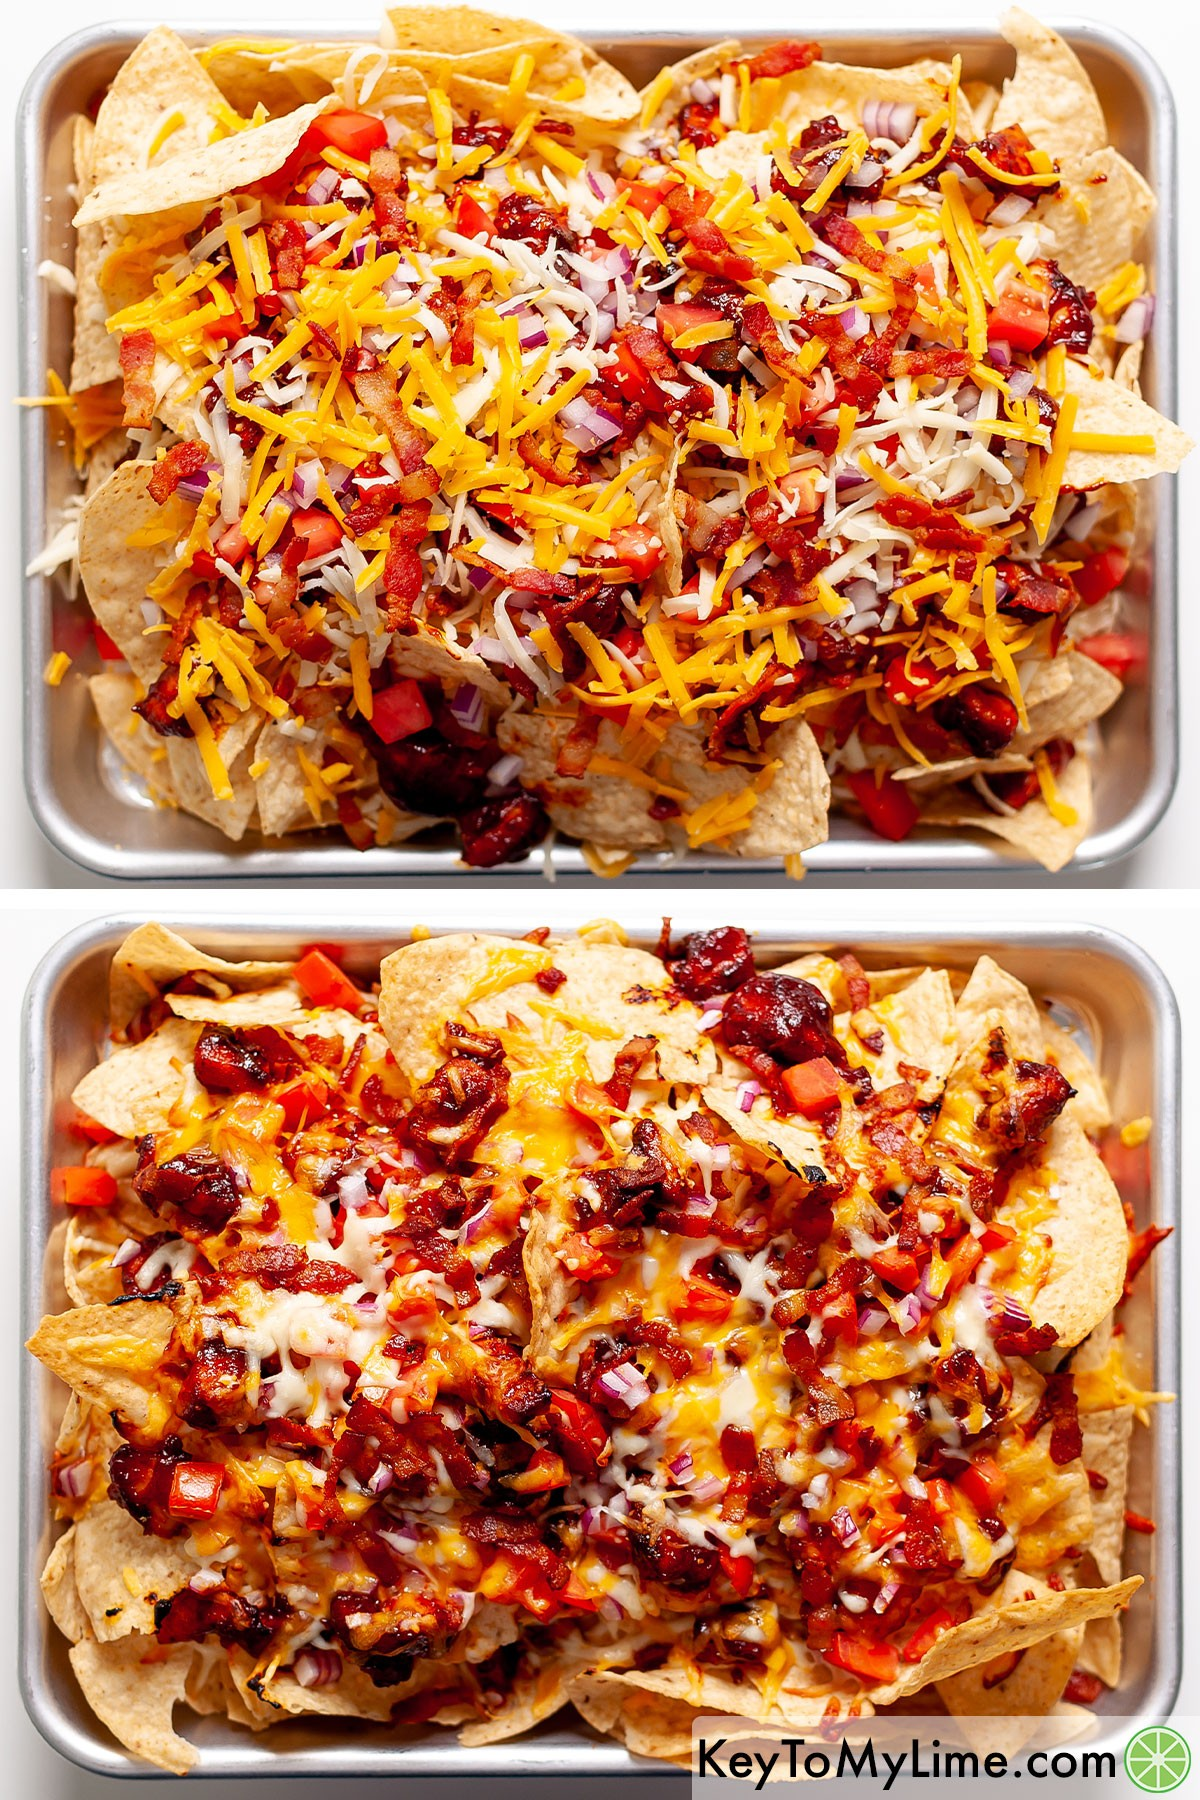 BBQ chicken nachos before and after baking.